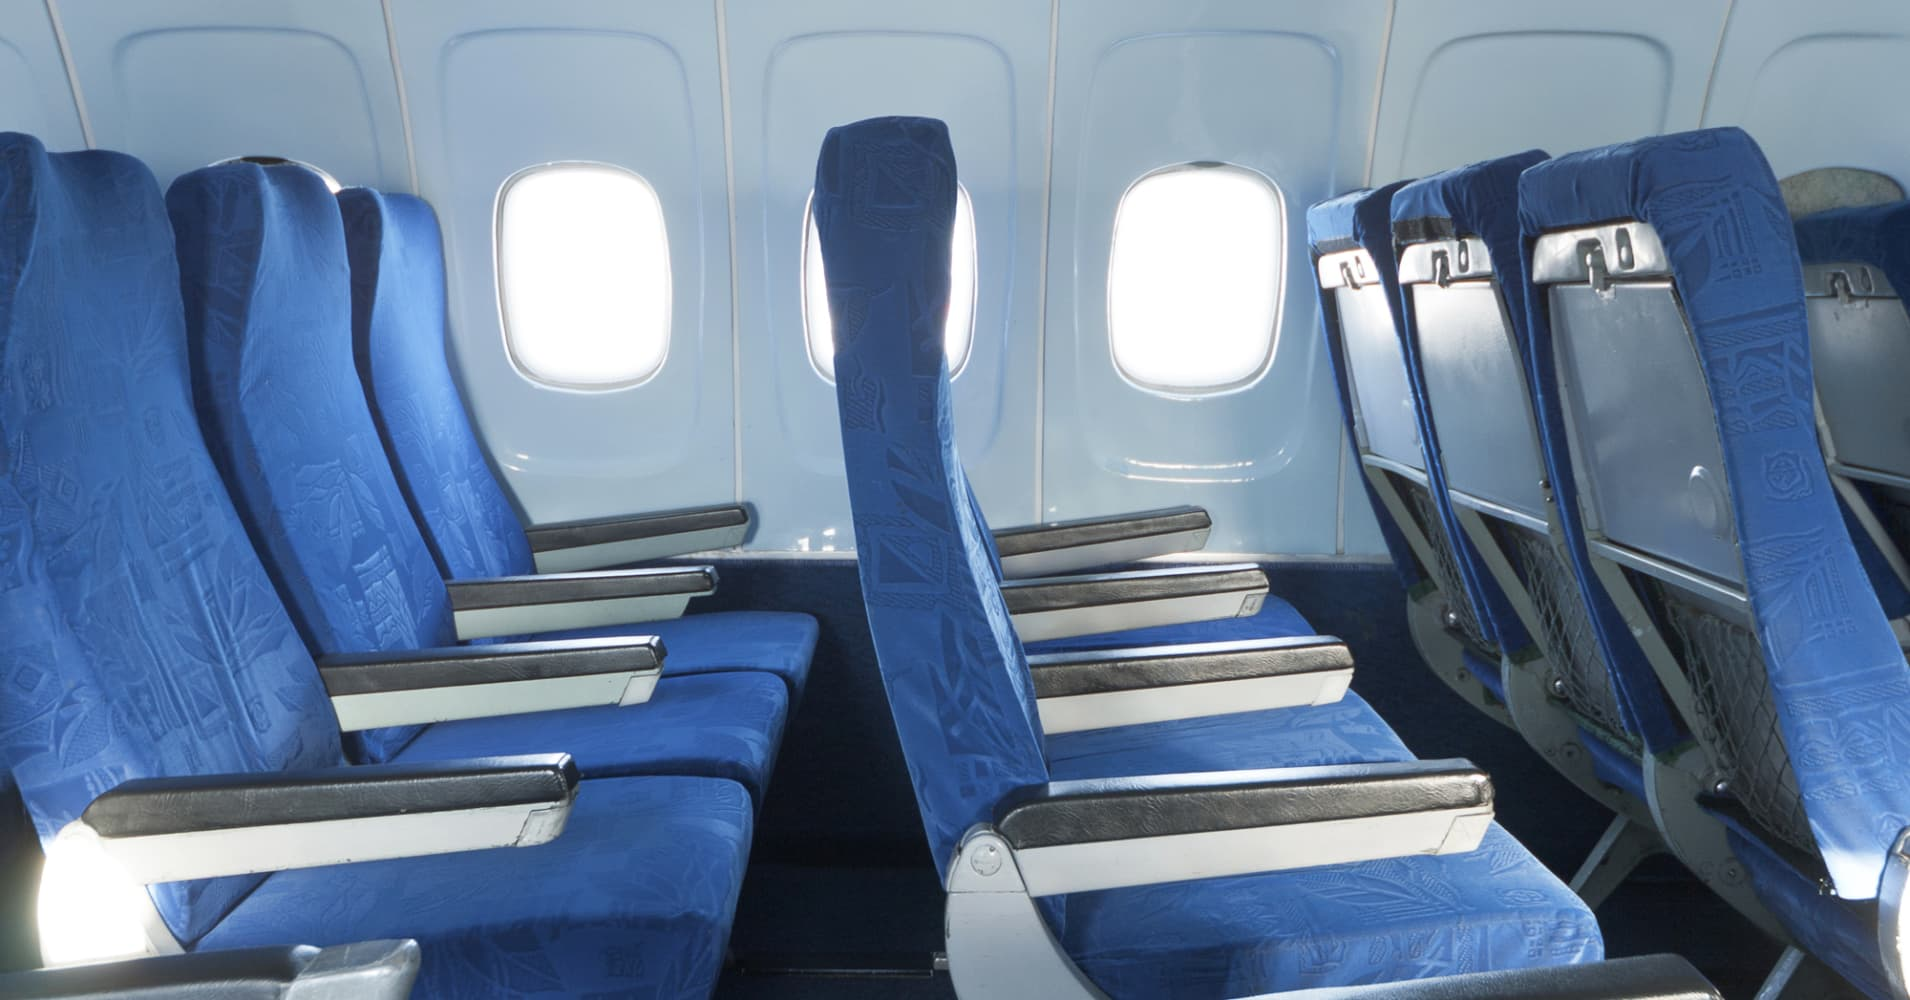 Airlines With The Biggest Economy Seats